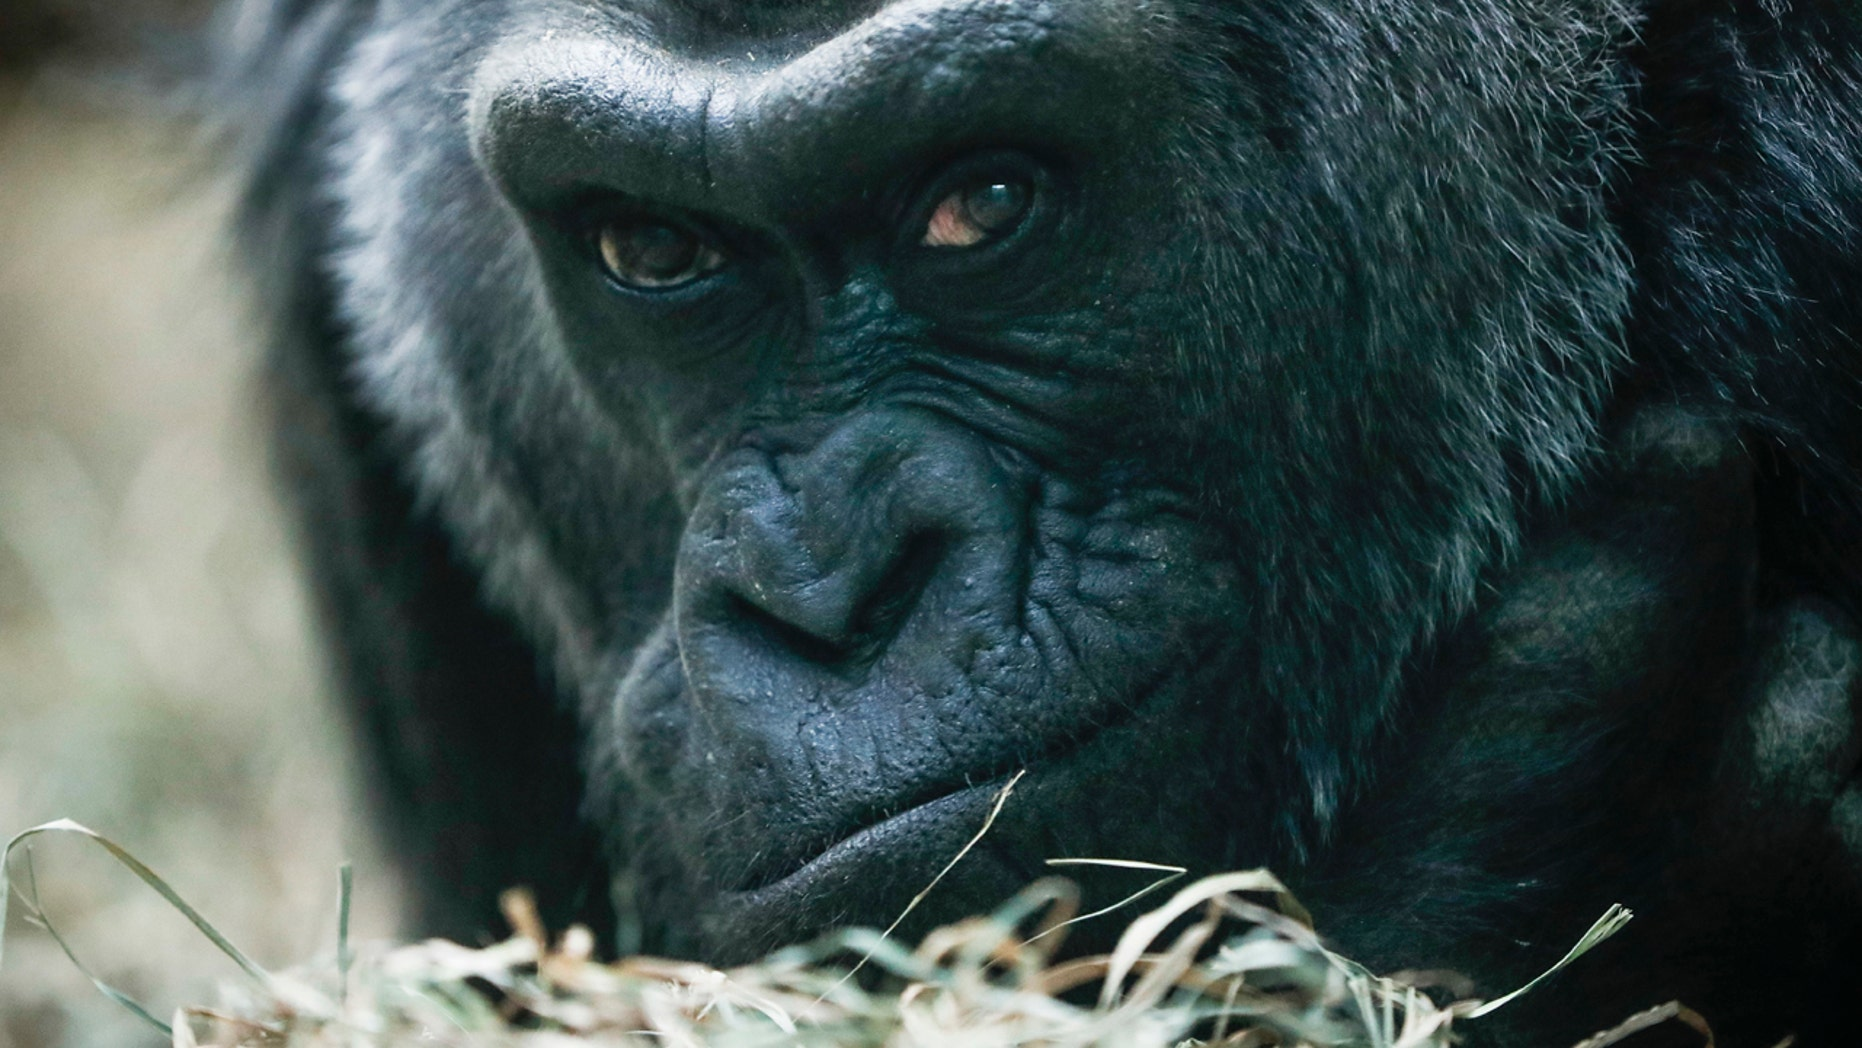 FILE - In this Dec. 15, 2016 file photo, Colo, a western lowland gorilla, rests in her enclosure at the Columbus Zoo, in Columbus, Ohio.